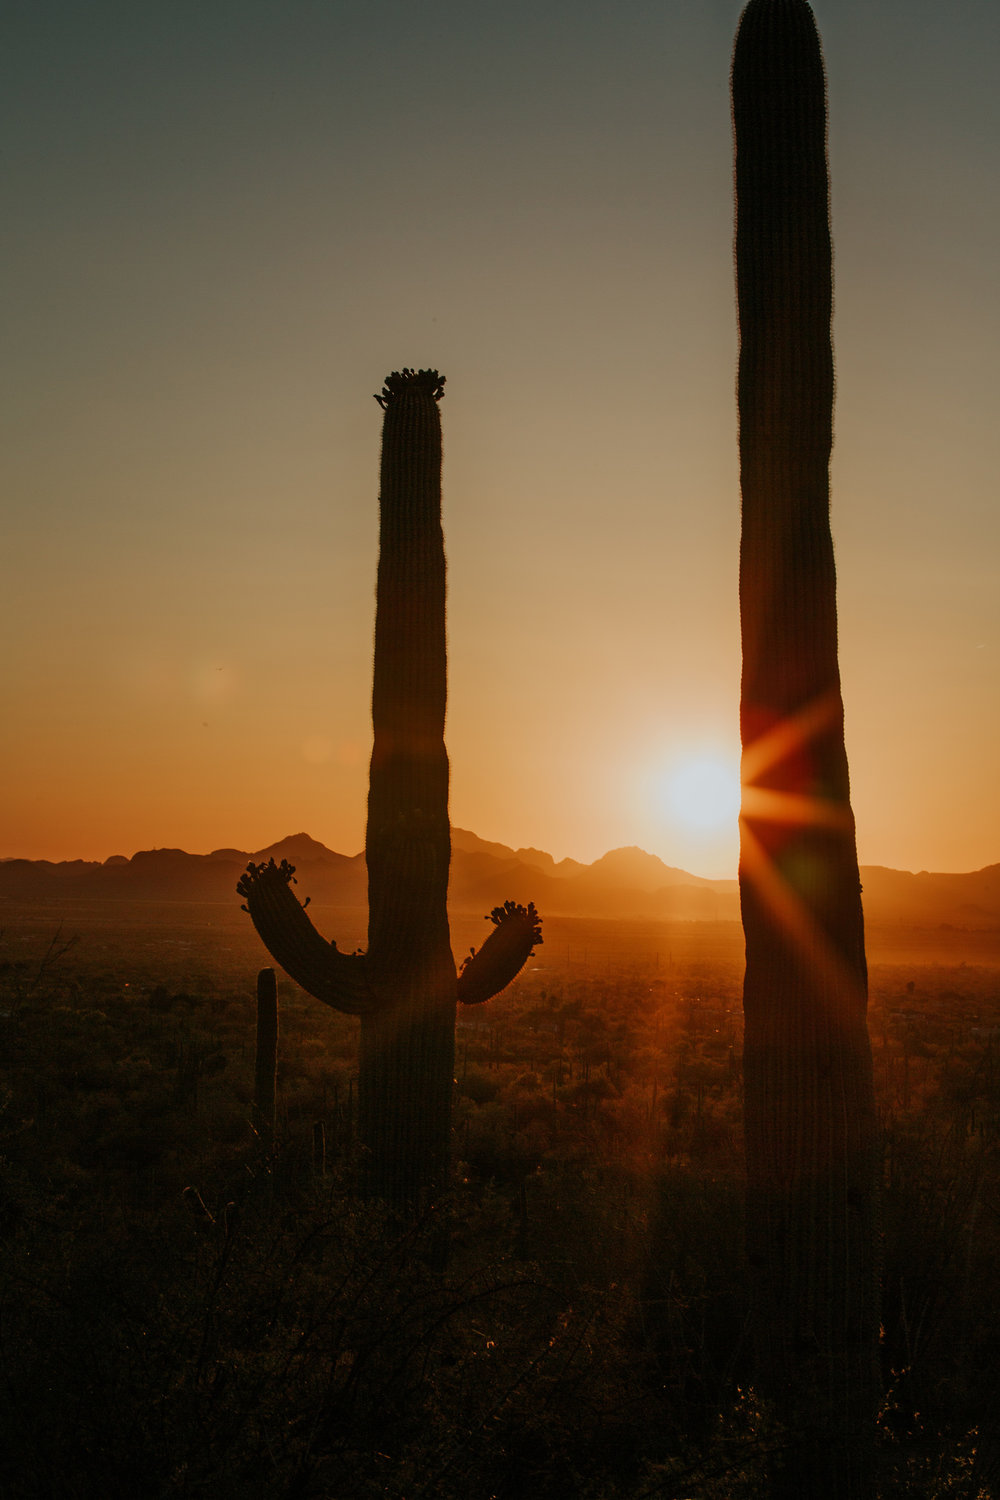 CindyGiovagnoli_Tucson_Arizona_Saguaro_National_Park_cactus_sunset_blooming_spring_sunset_petroglyphs_Native_American_indigenous-014.jpg